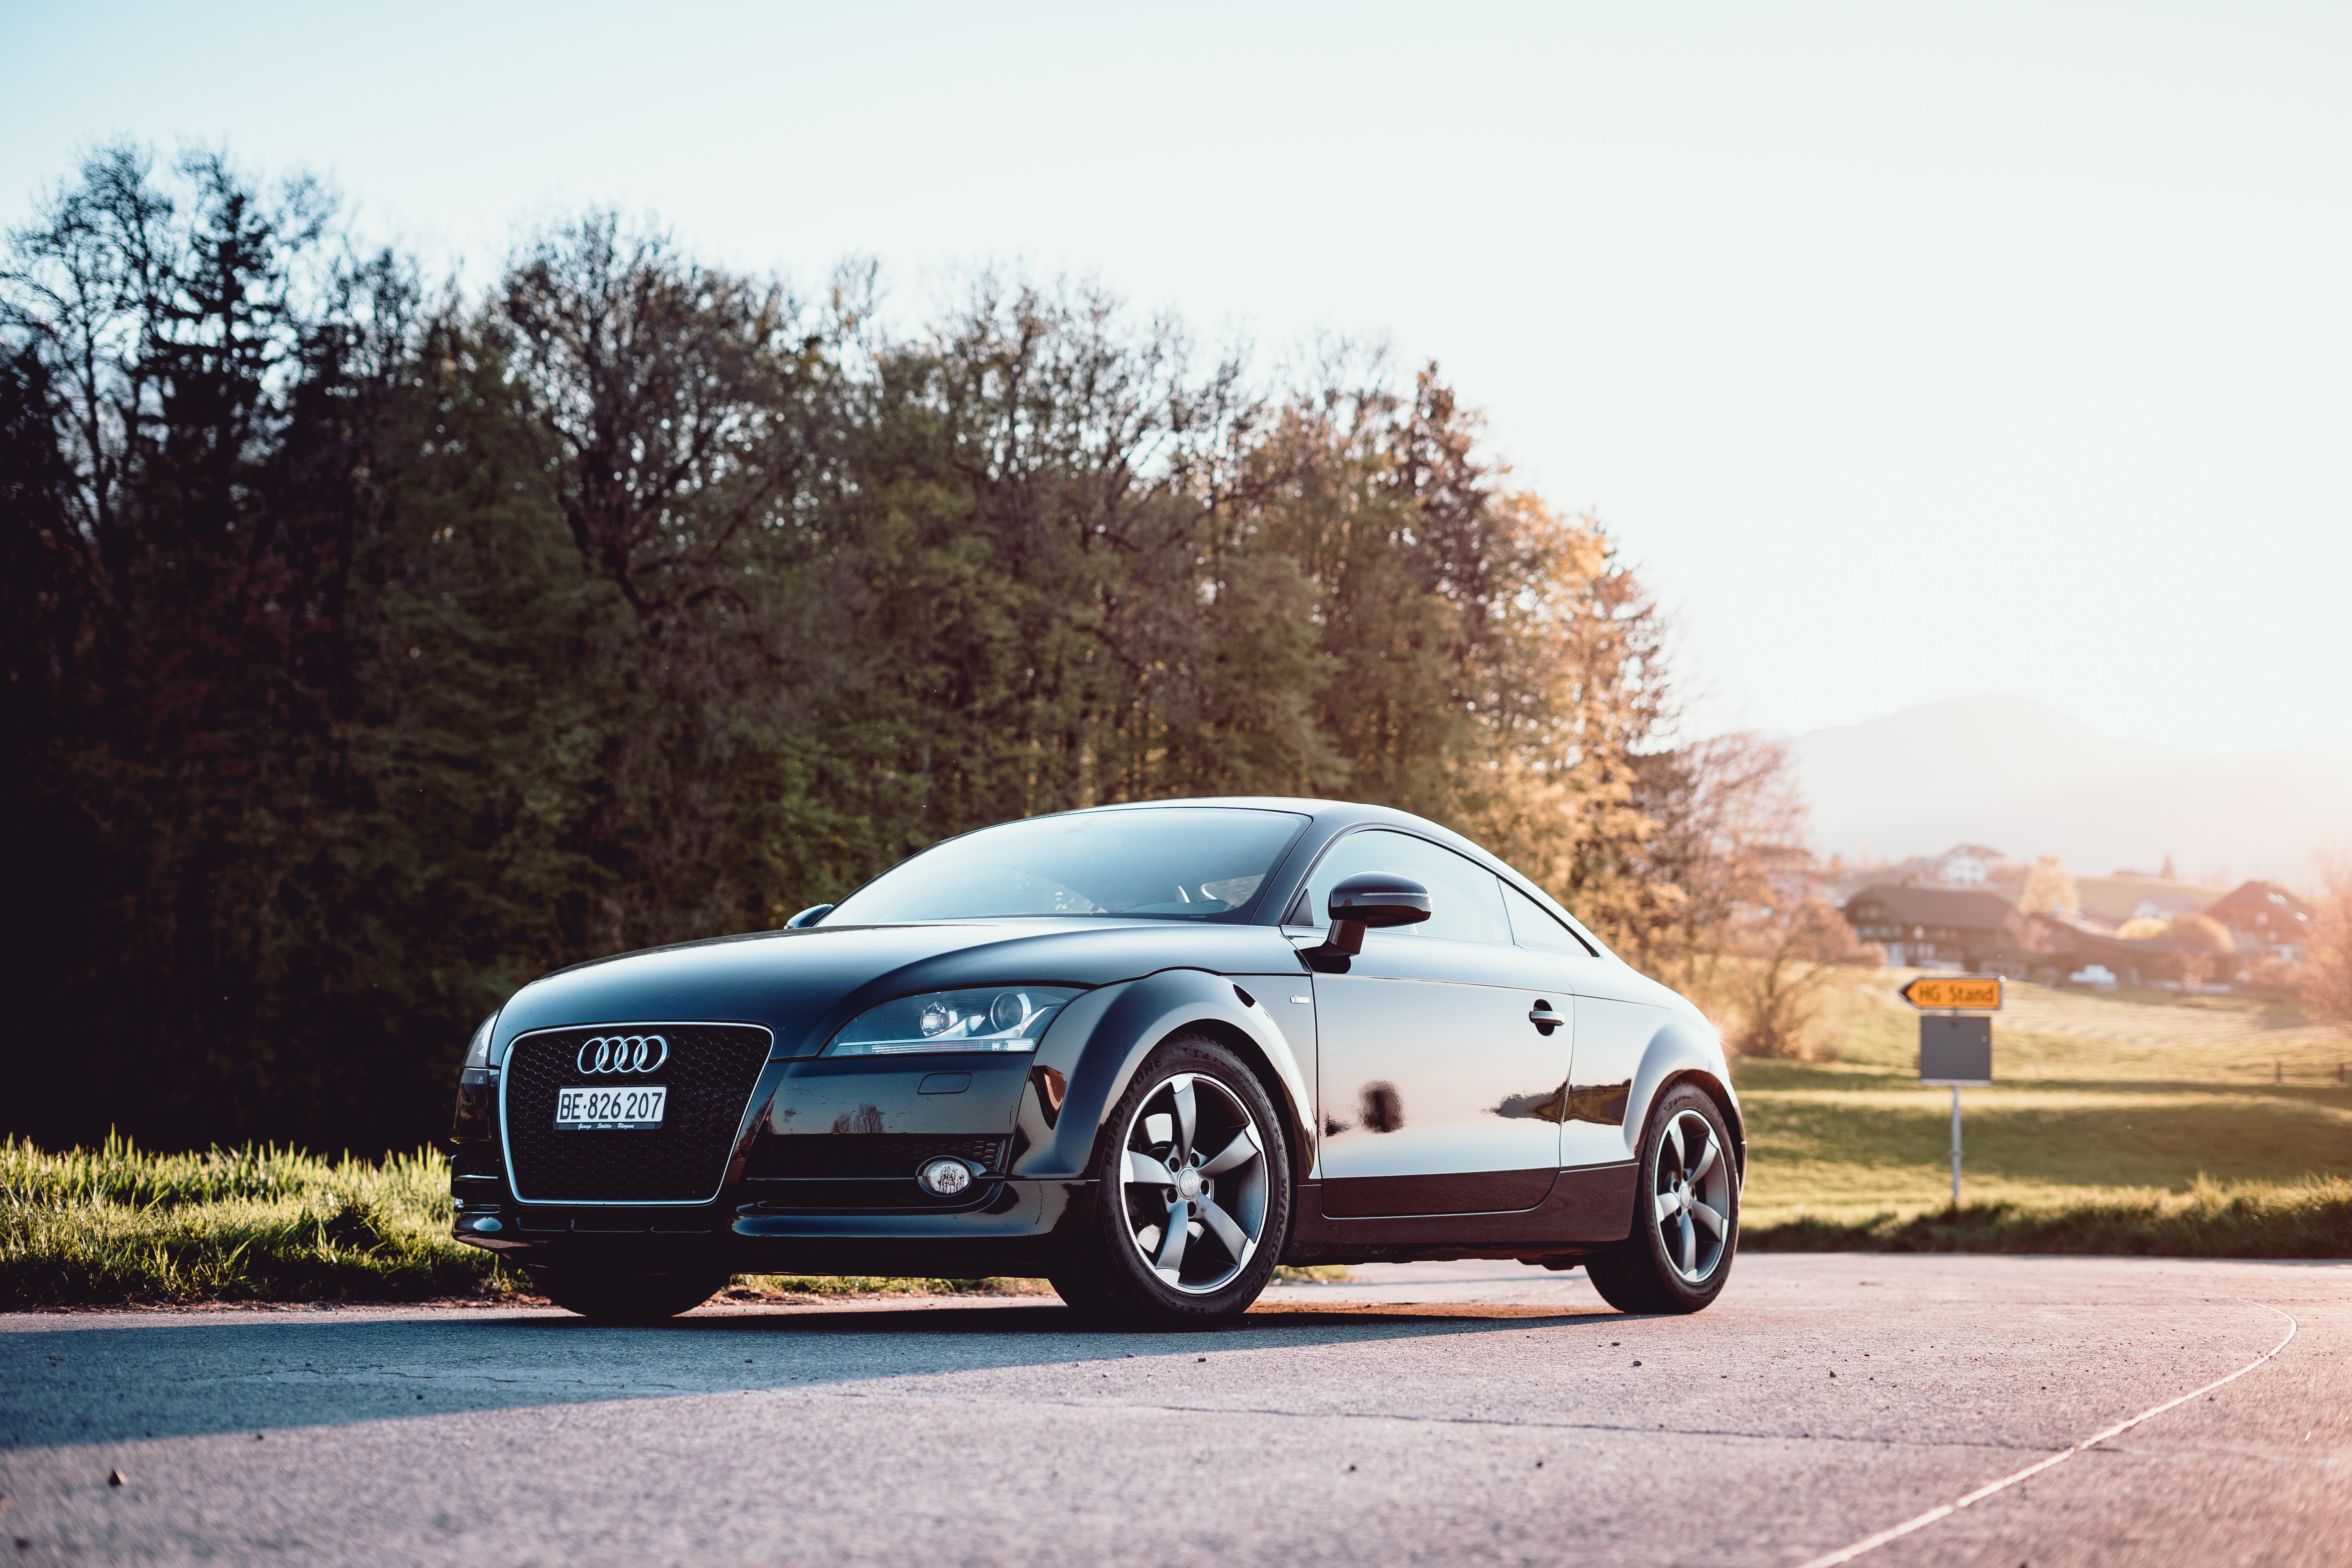 black Audi coupe parked on gray concrete road